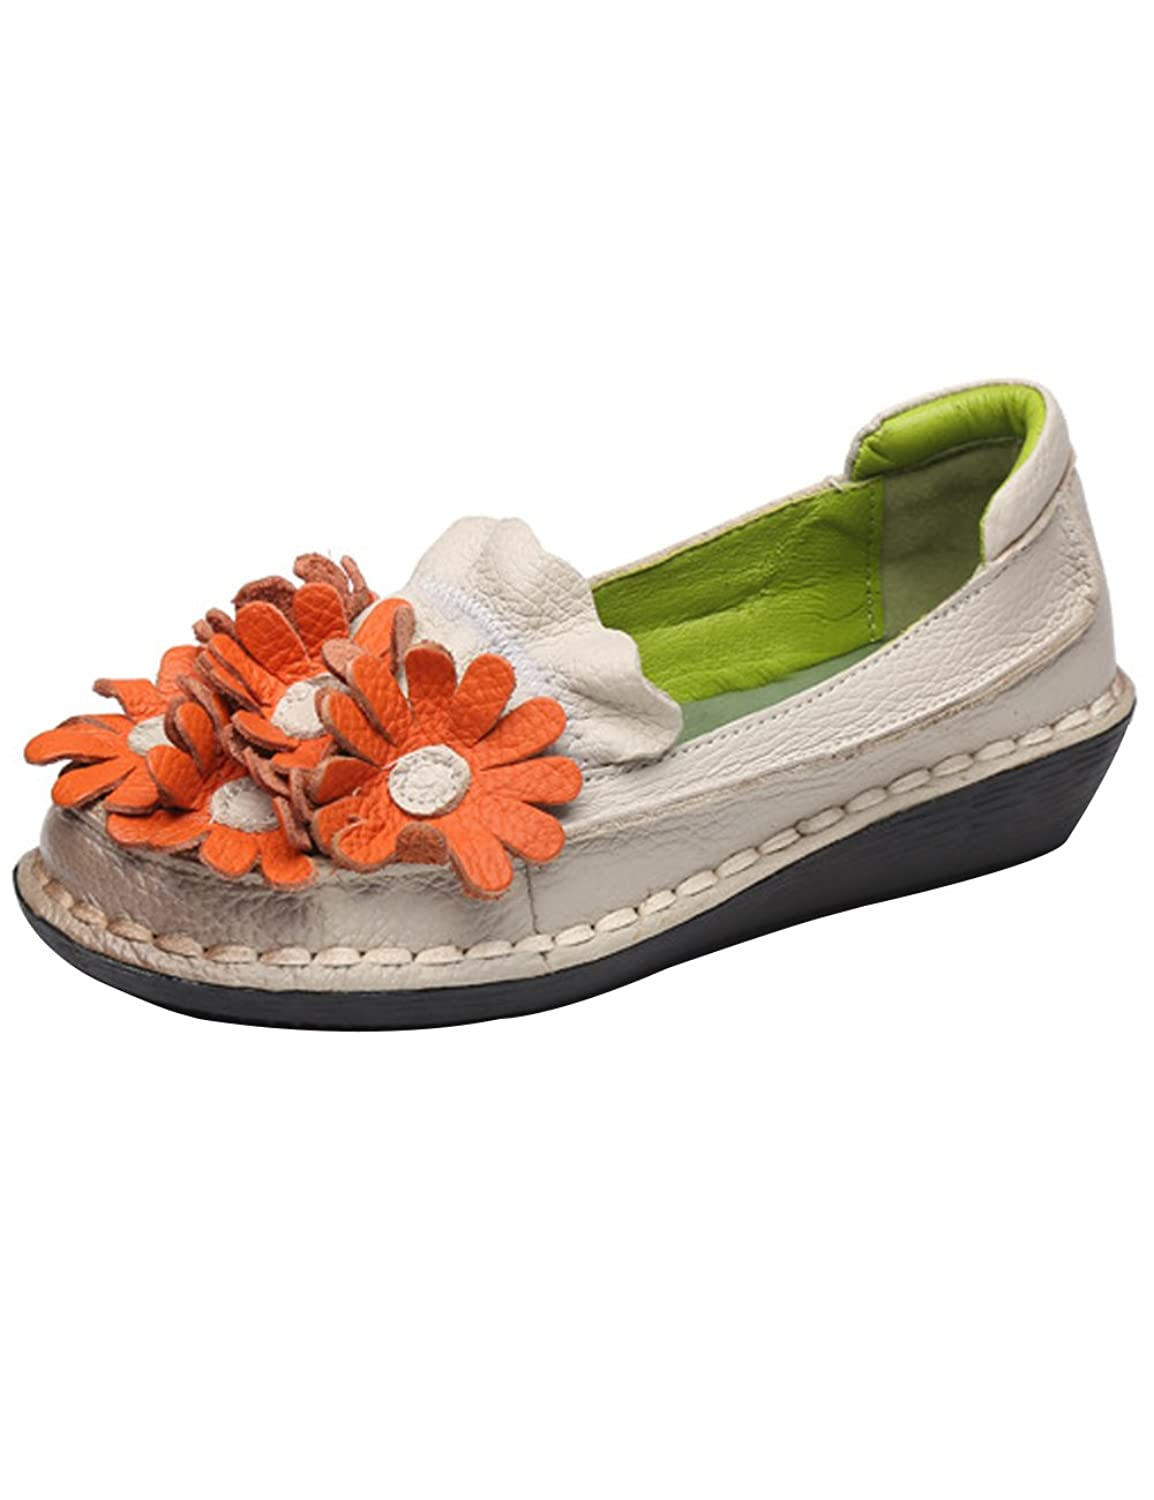 Zoulee Women's Handmade Leather Flowers Flat Shoes Cowhide Pregnant Shoes